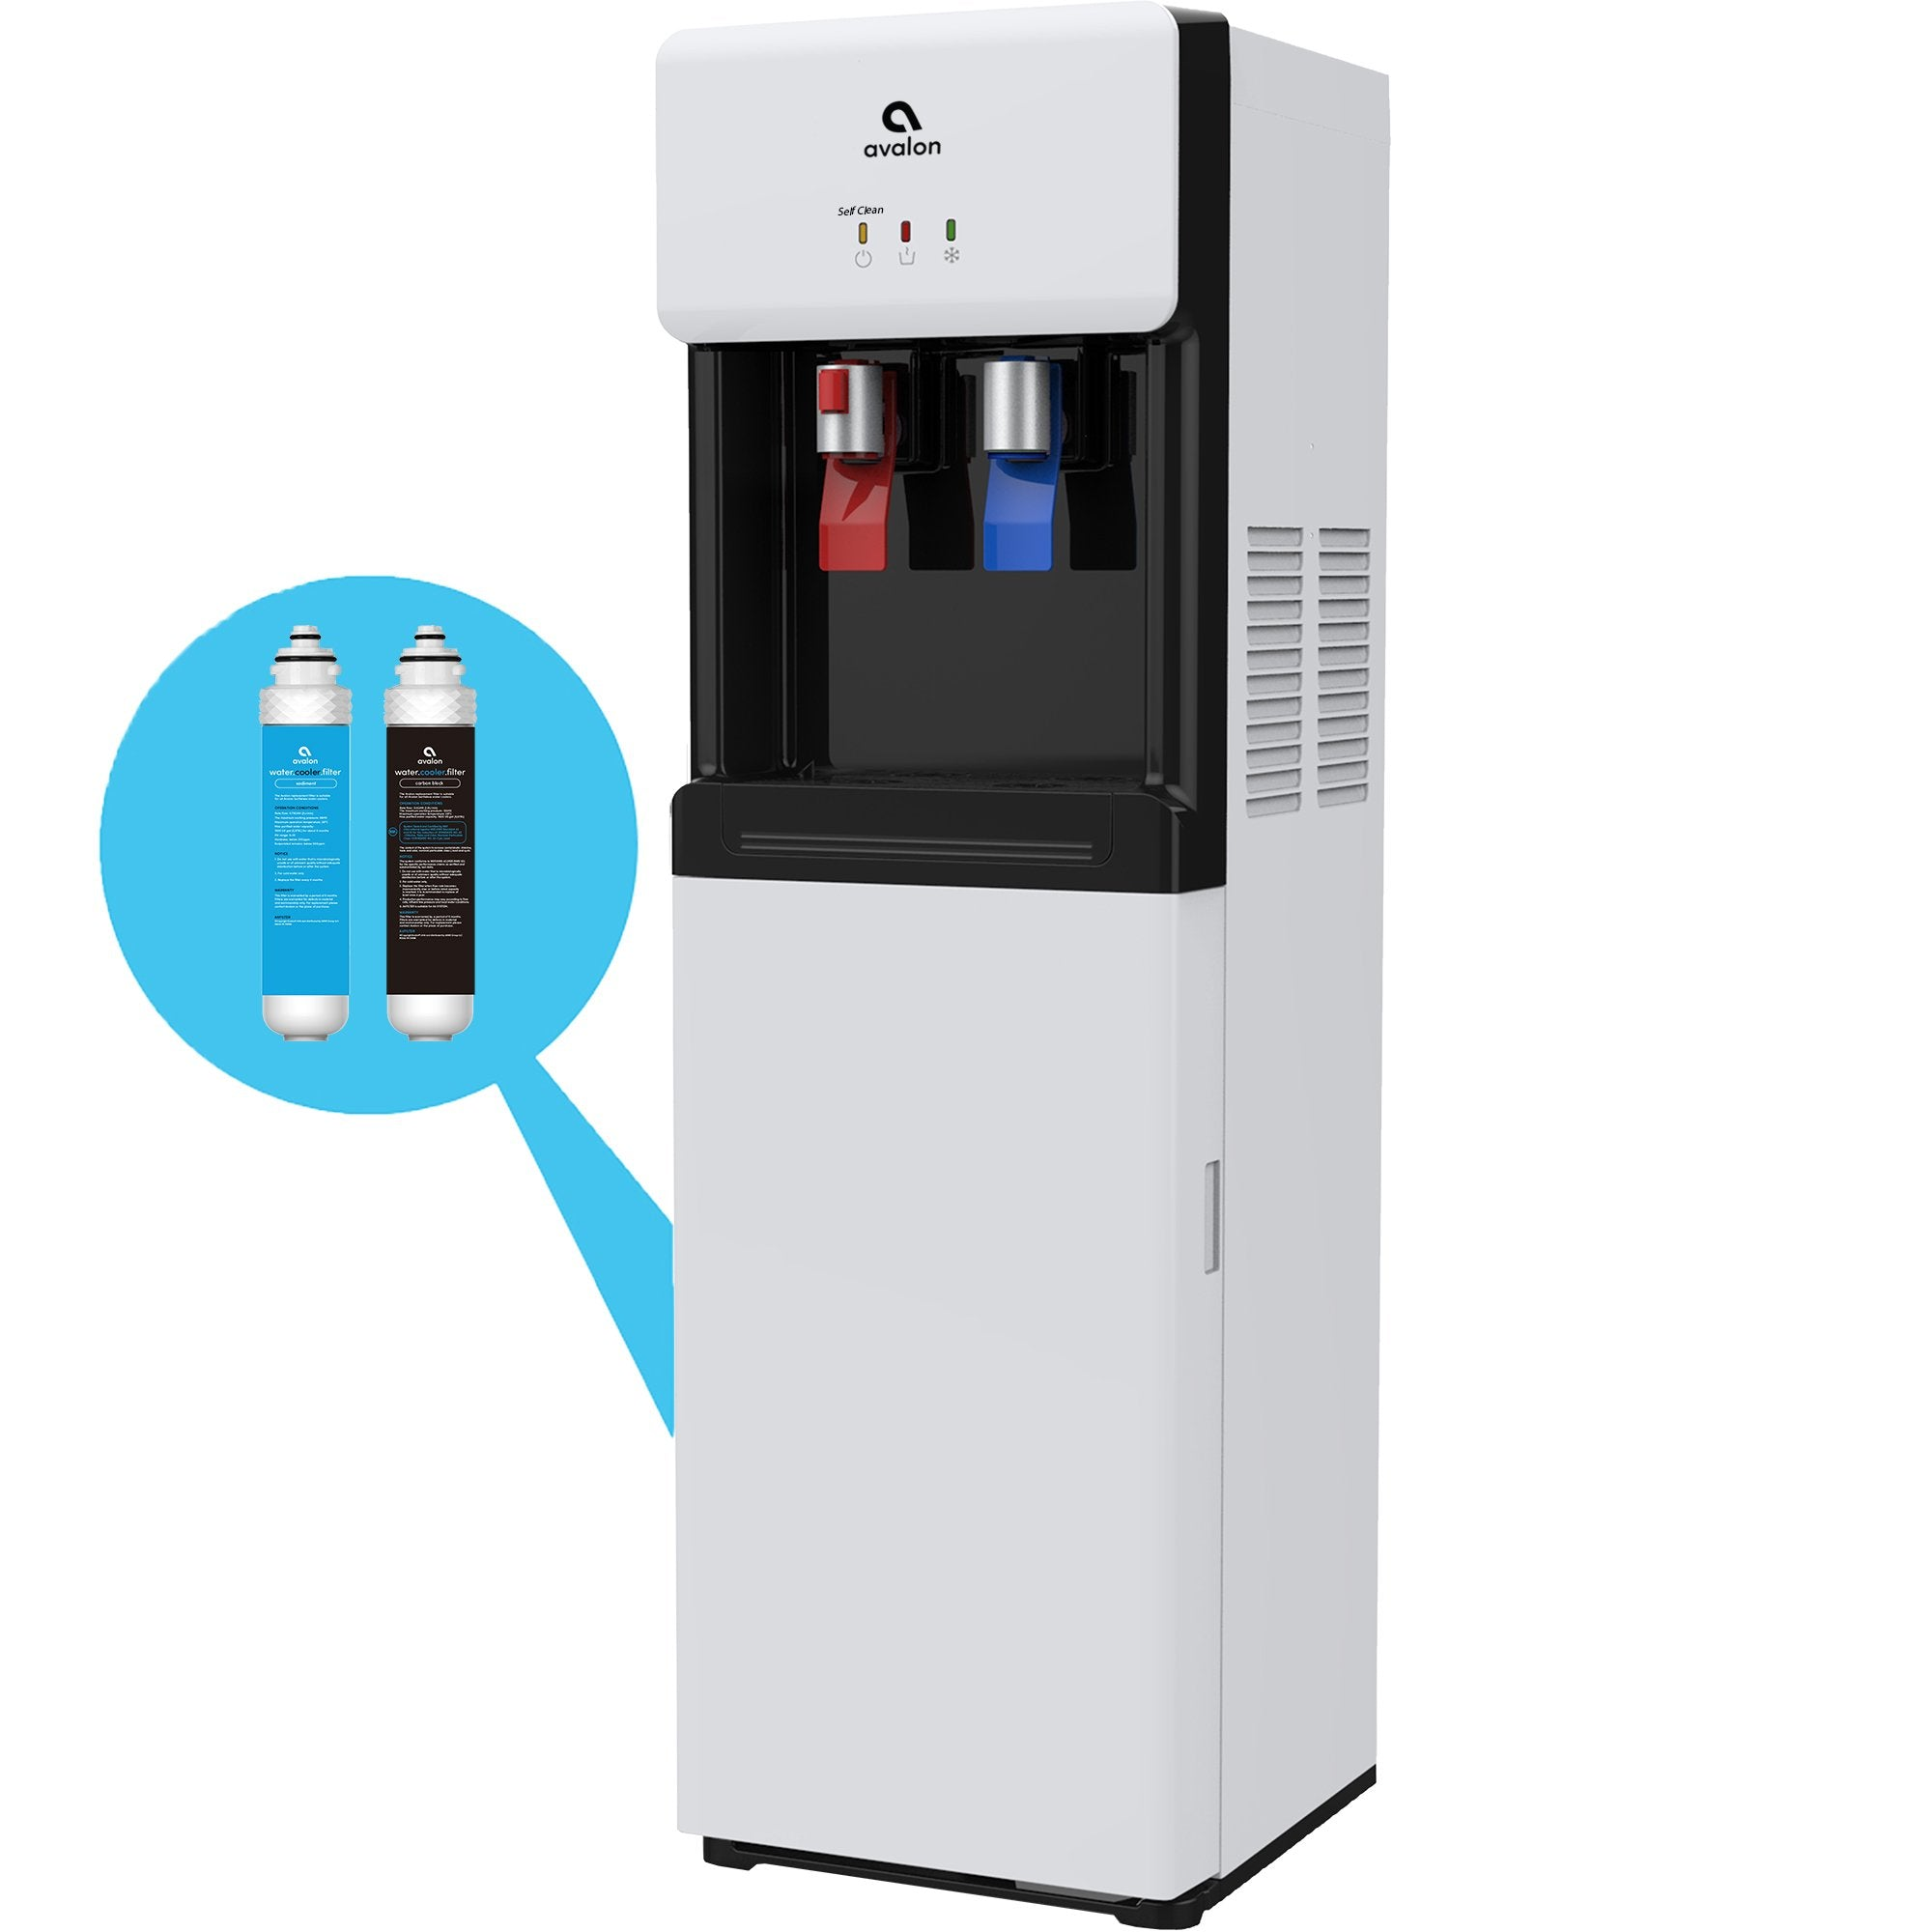 Avalon Self Cleaning Bottleless Water Cooler Dispenser - Hot & Cold Water with Child Safety Lock